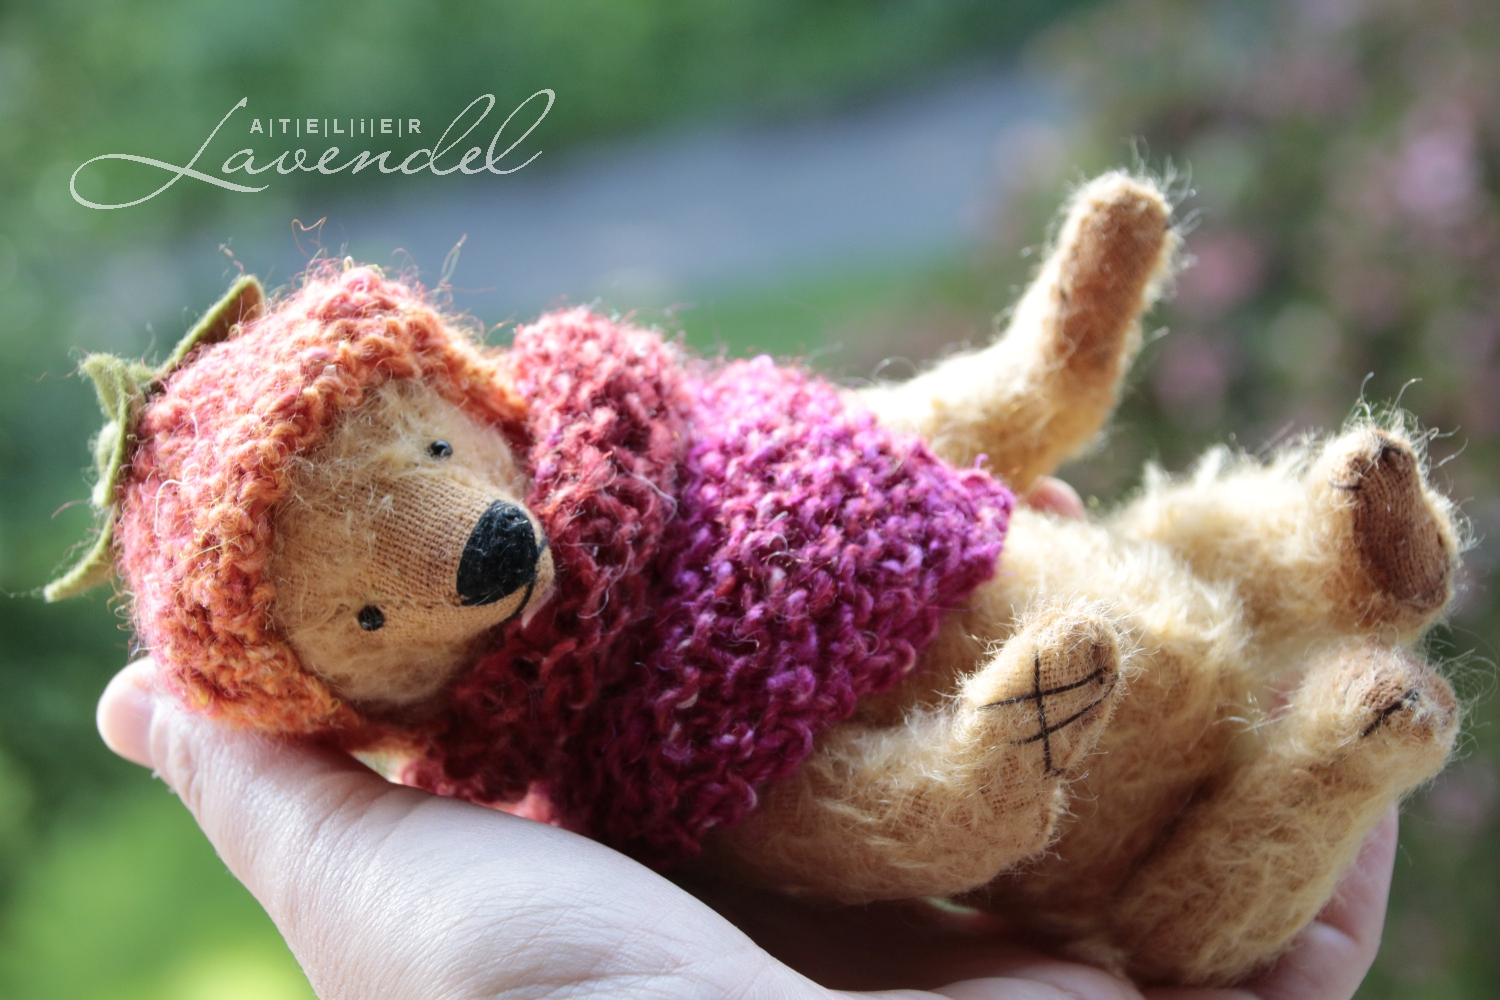 Meet Mathilda! RTG ooak artist bears by Atelier lavendel. Best quality natural materials, original designs. Hanmade in Germany.